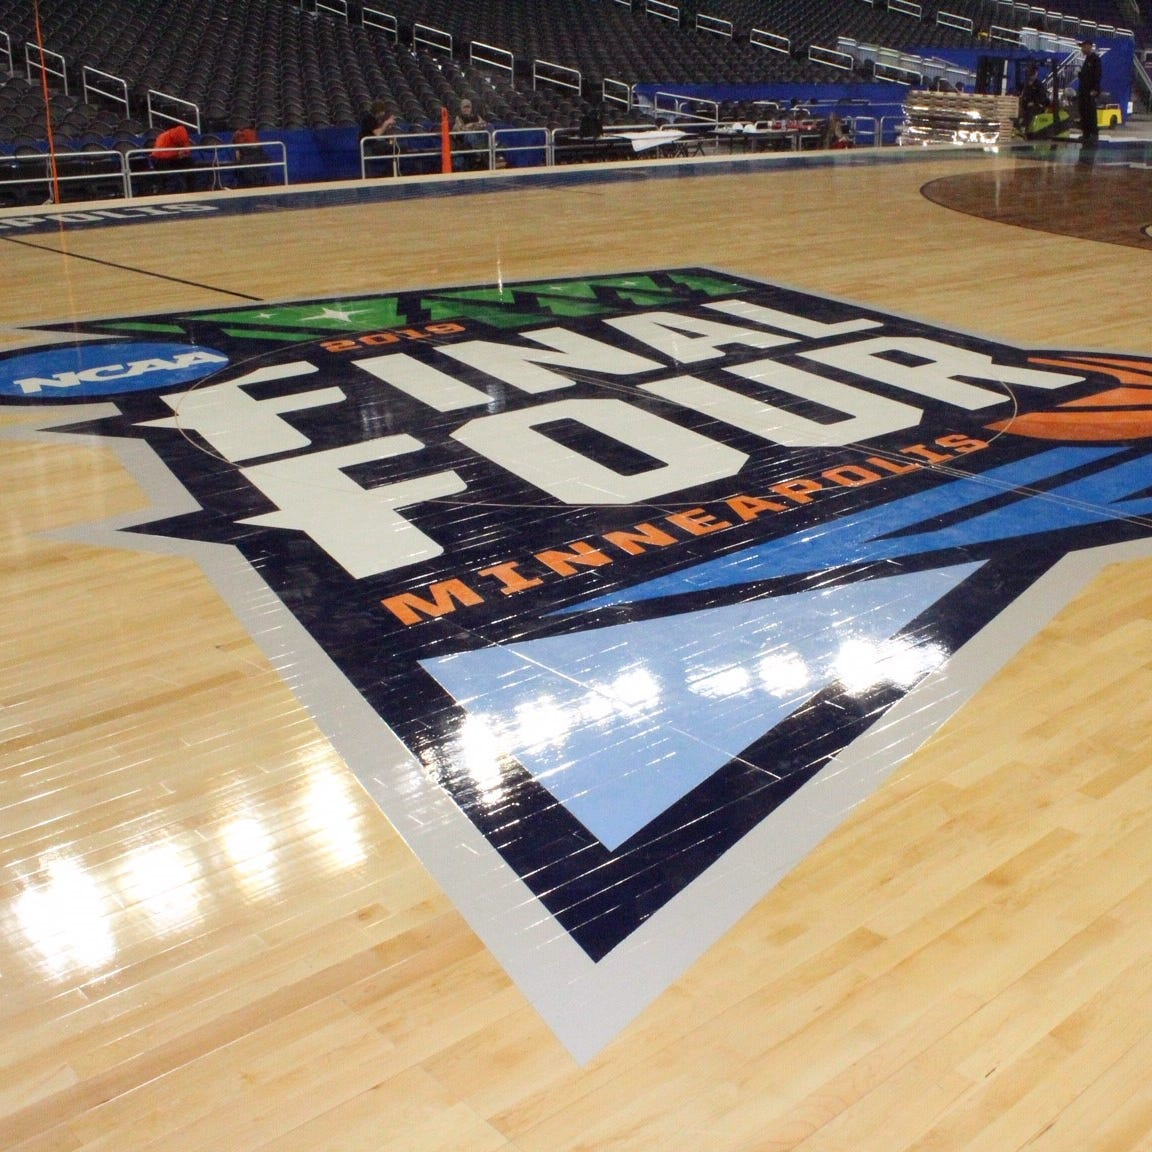 When the Final Four hit the boards, those will be Menominee Tribal Enterprises boards